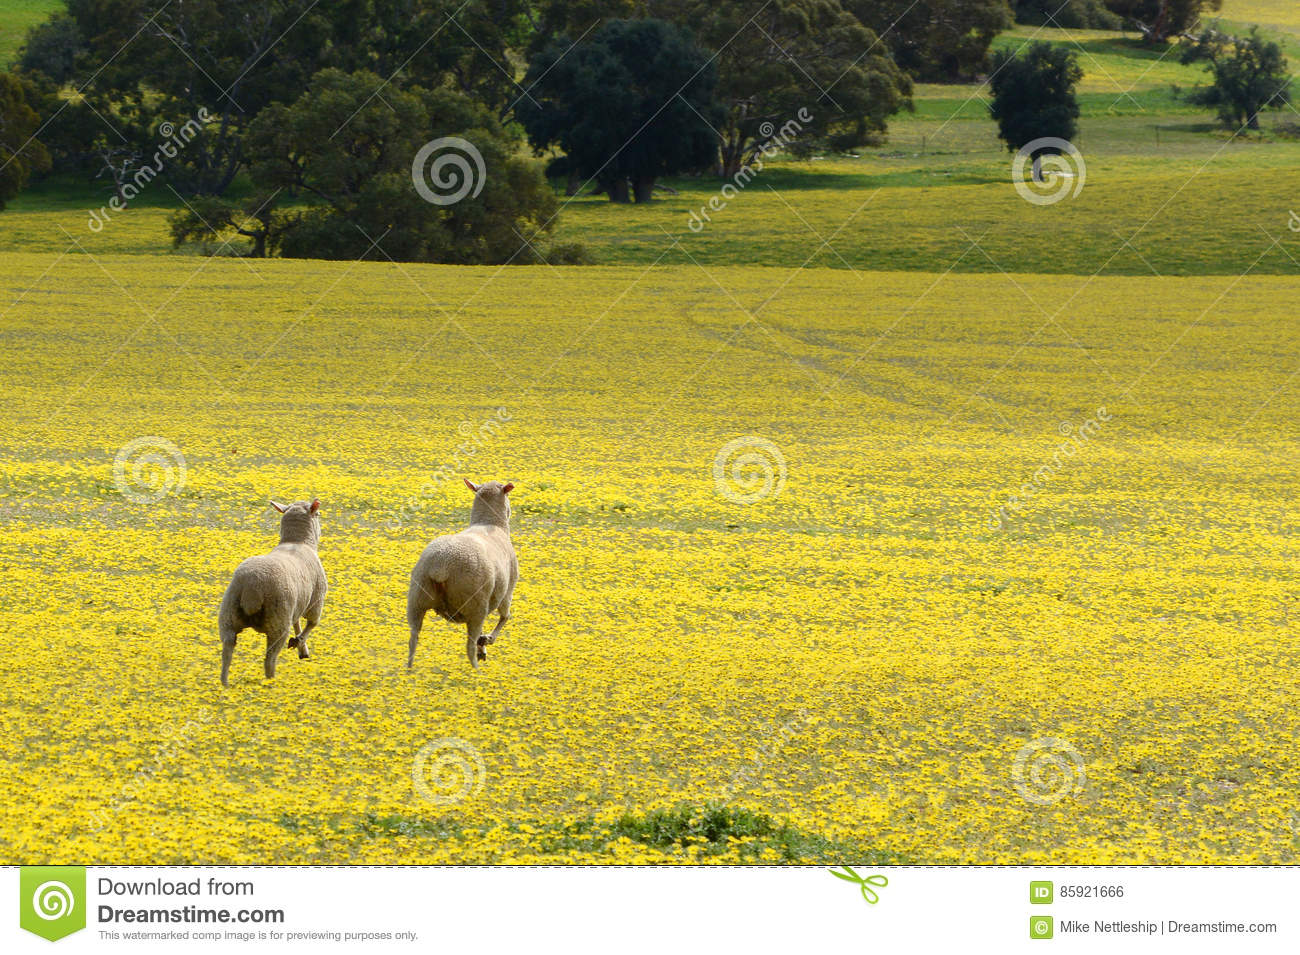 Sheep On The Run Across A Field Of Yellow Flowers Stock Photo